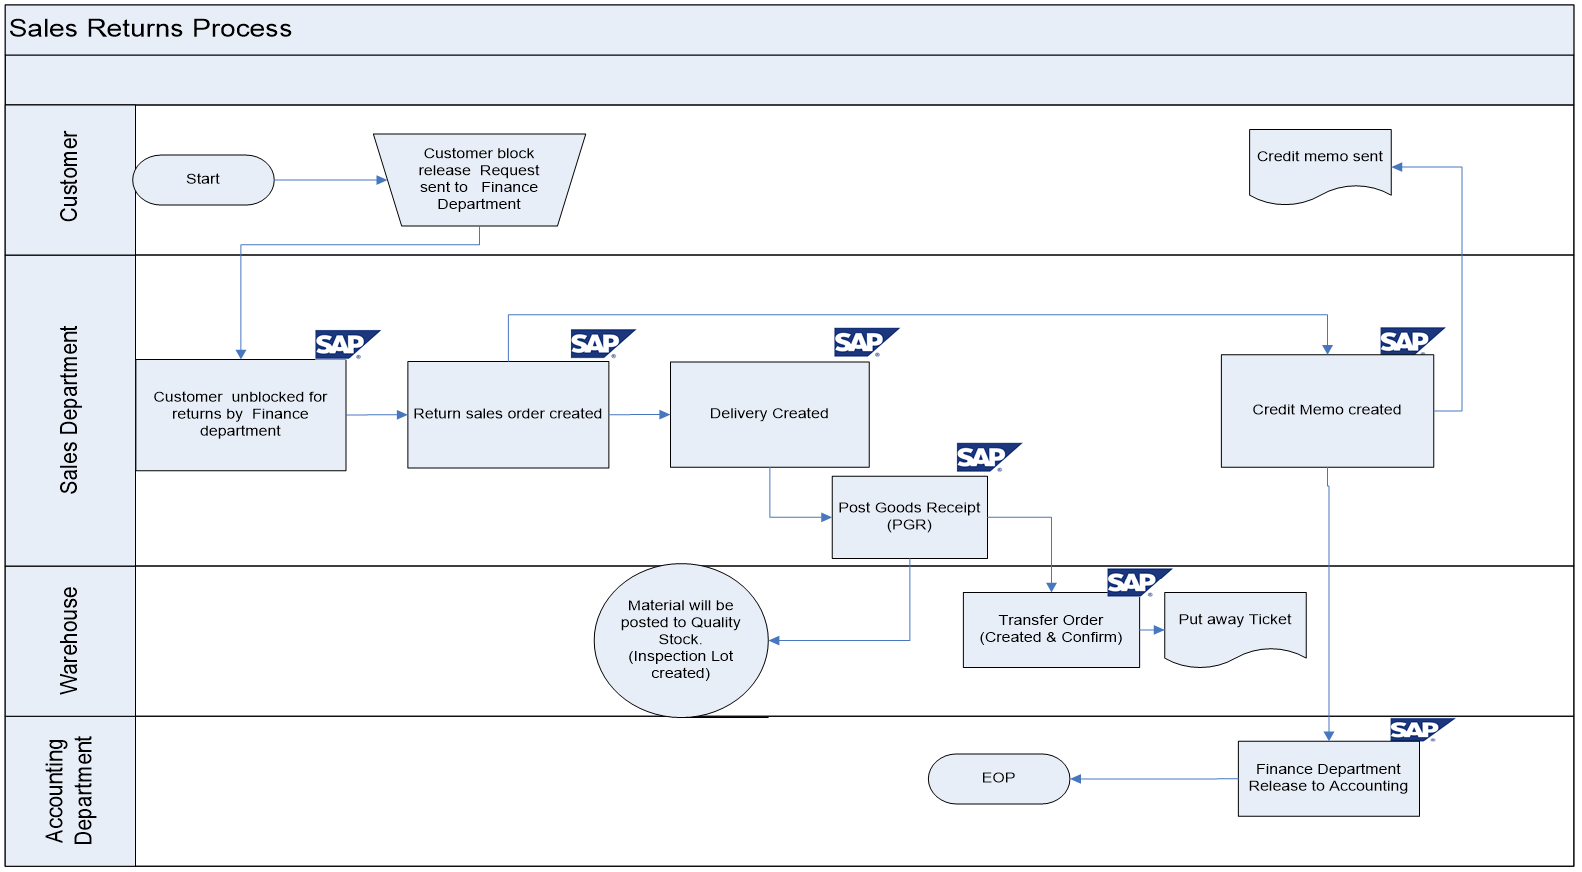 Sap sd business blueprint export sales return process scenario with export sales return process flow diagram in sap sd malvernweather Image collections